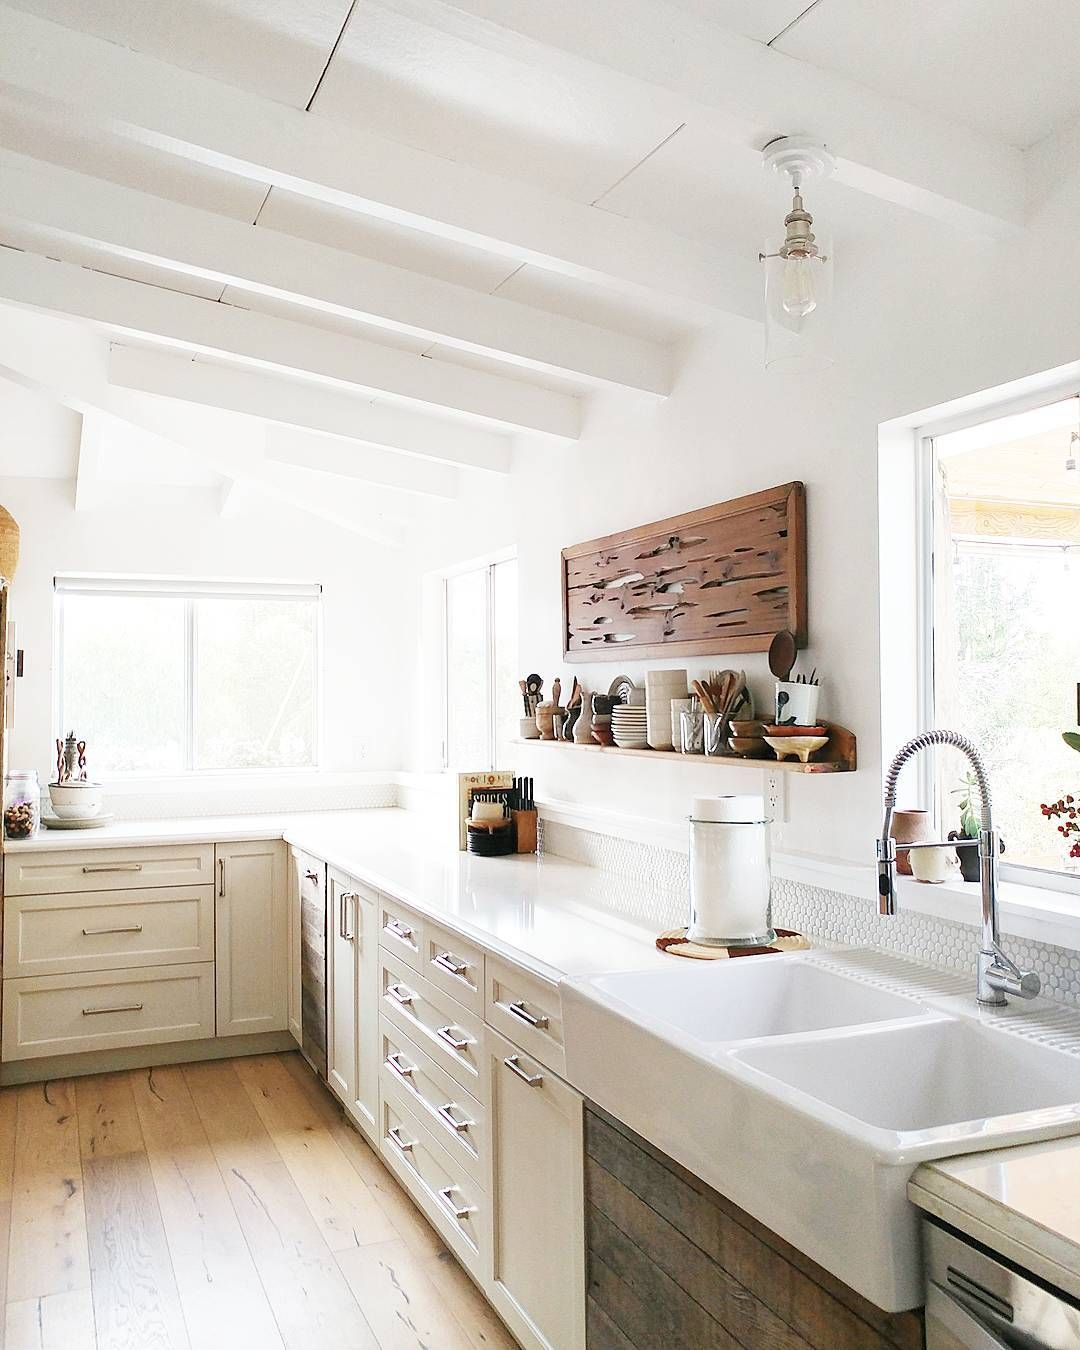 Charming Rustic Kitchen Ideas And Inspirations: Dreaming Of This Bright And Rustic Kitchen In